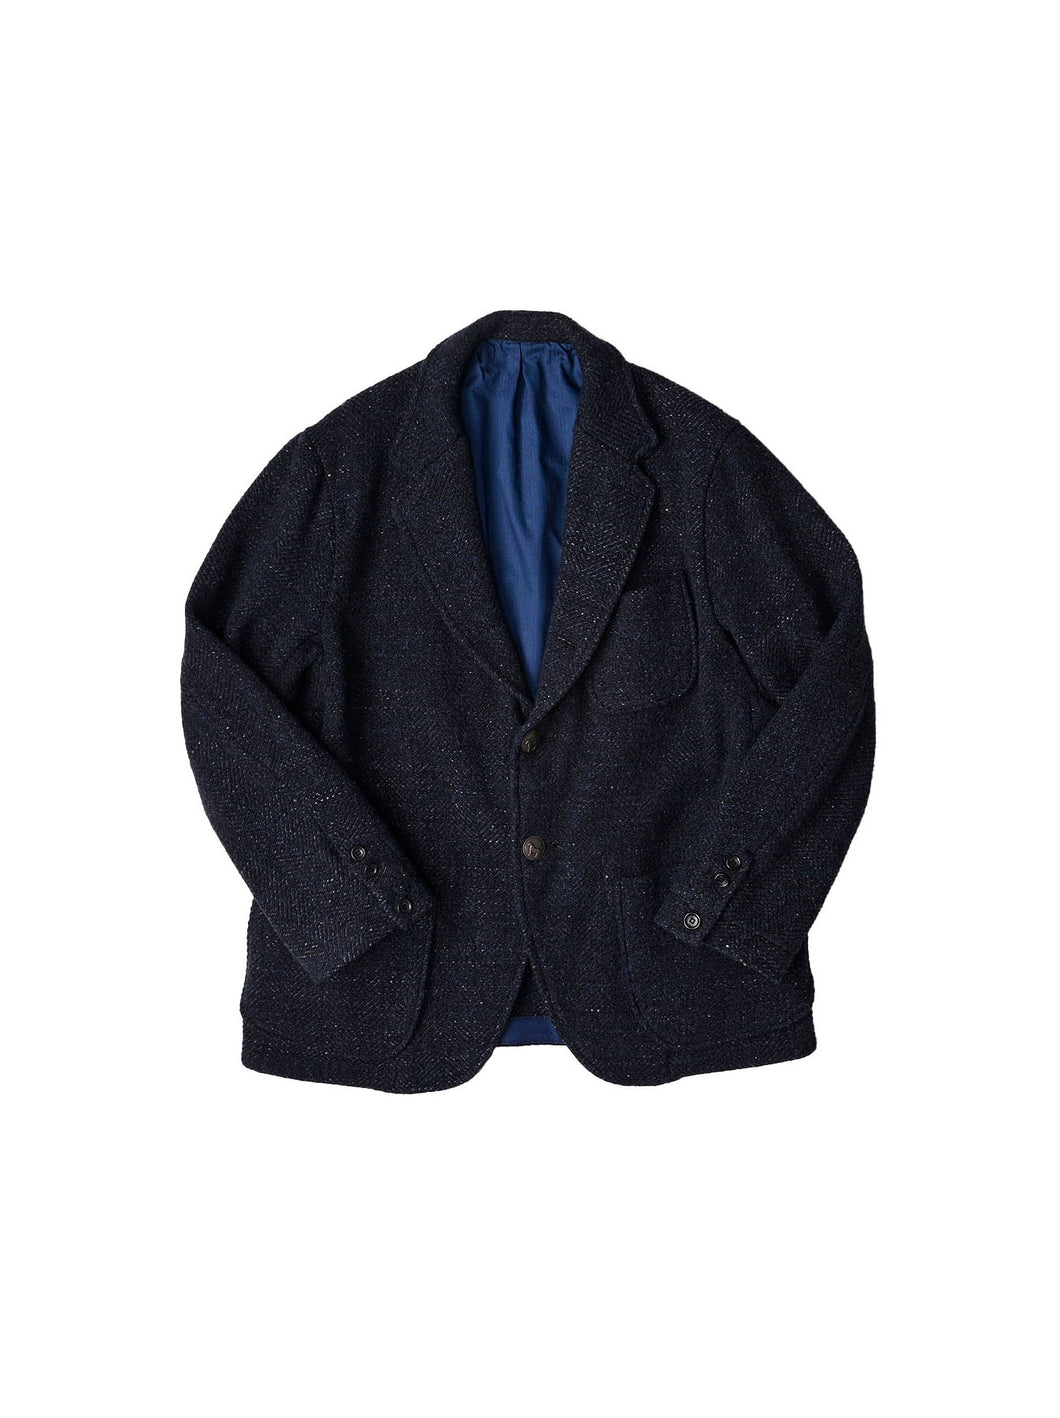 Indigo Tweed Melton Wool Asama Jacket in indigo